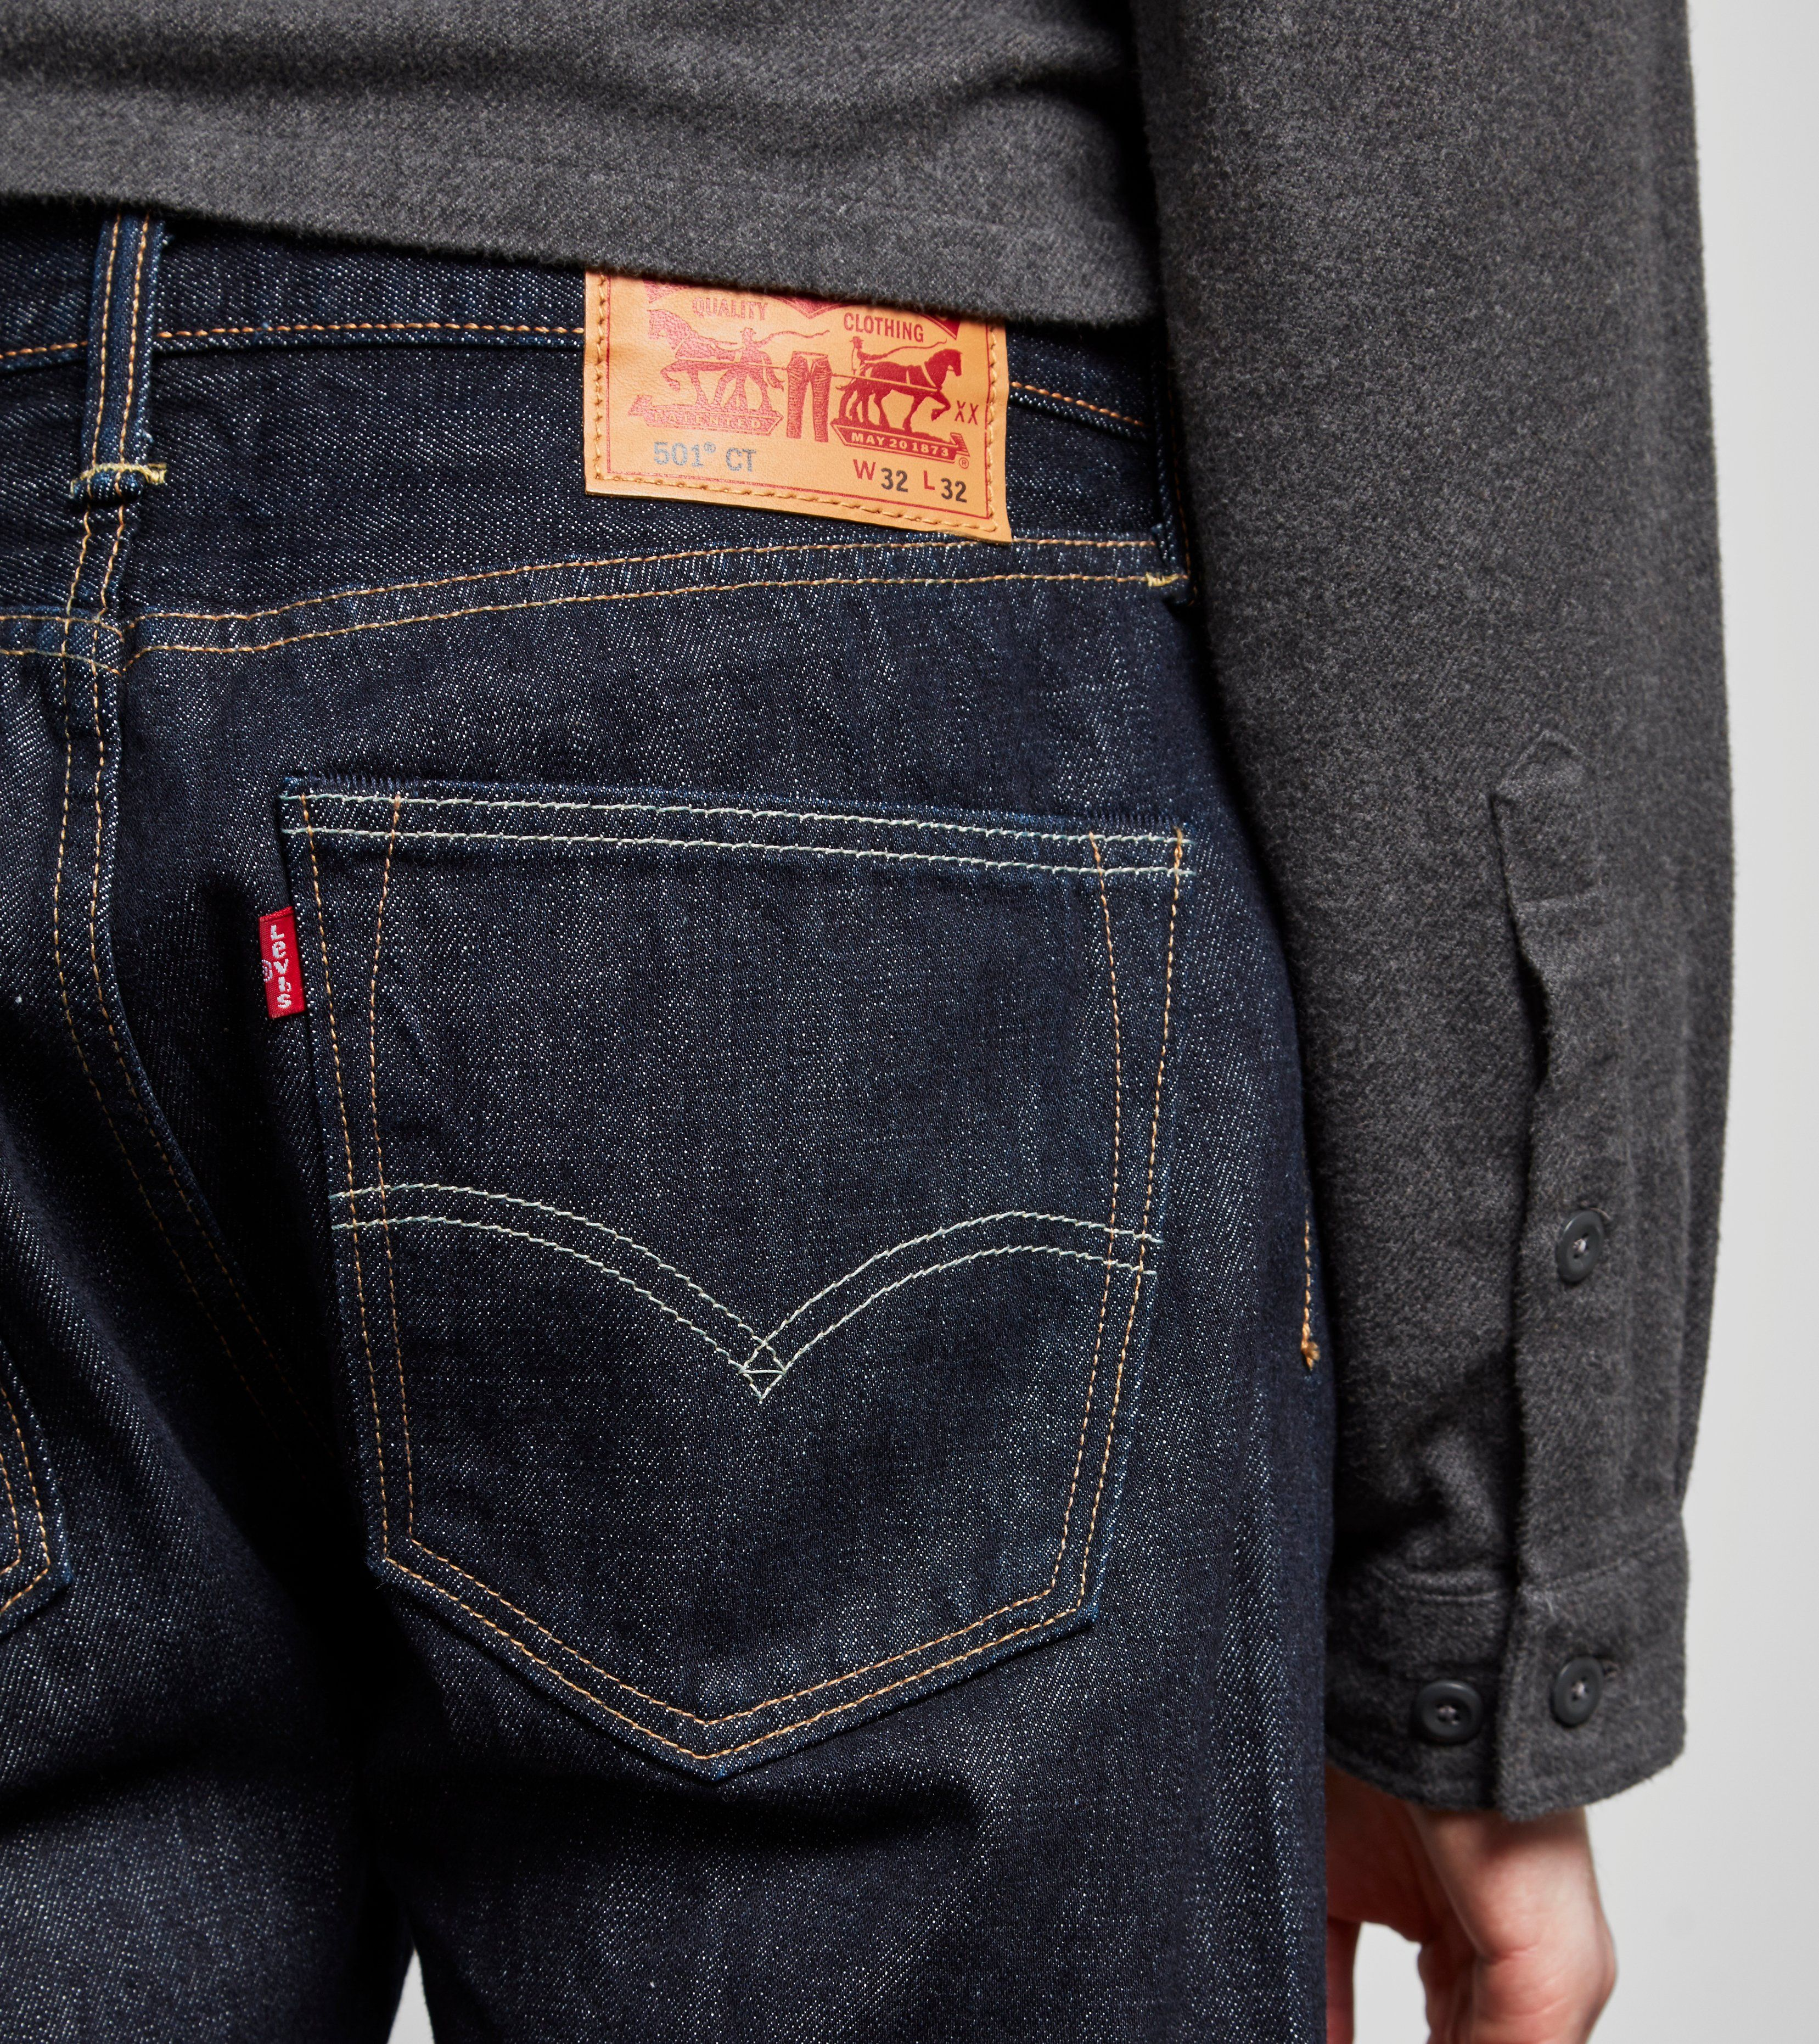 Loose Tapered Japanese Selvedge Jeans. £ Our Loose Tapered Fit is a classic 5 pocket relaxed fit jean with tapered leg and mid length kejal-2191.tk: HAWKSMILL DENIM CO.